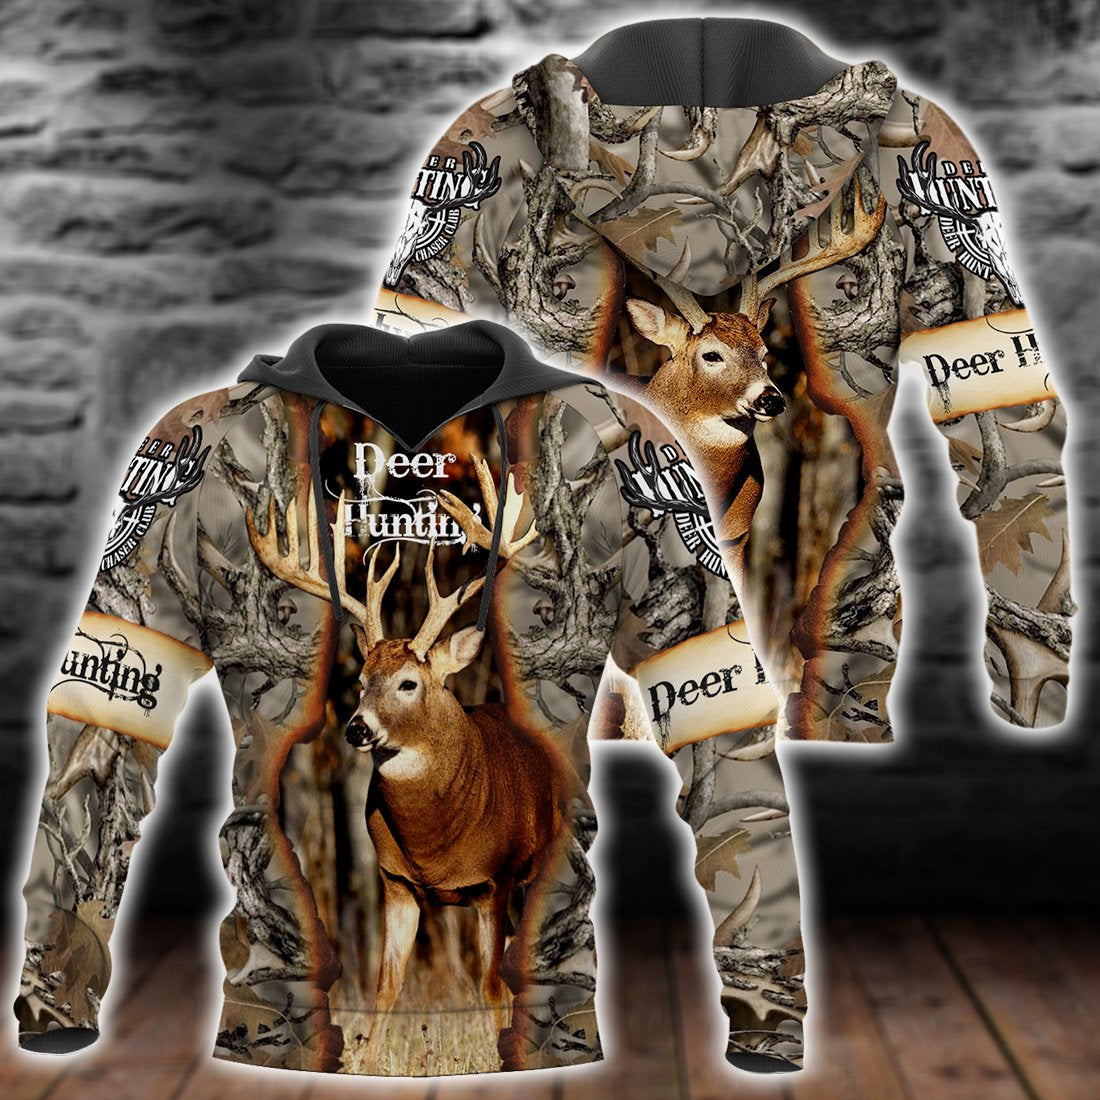 Deer Hunting All Over PrintT Shirts for Men and Women - luxamz